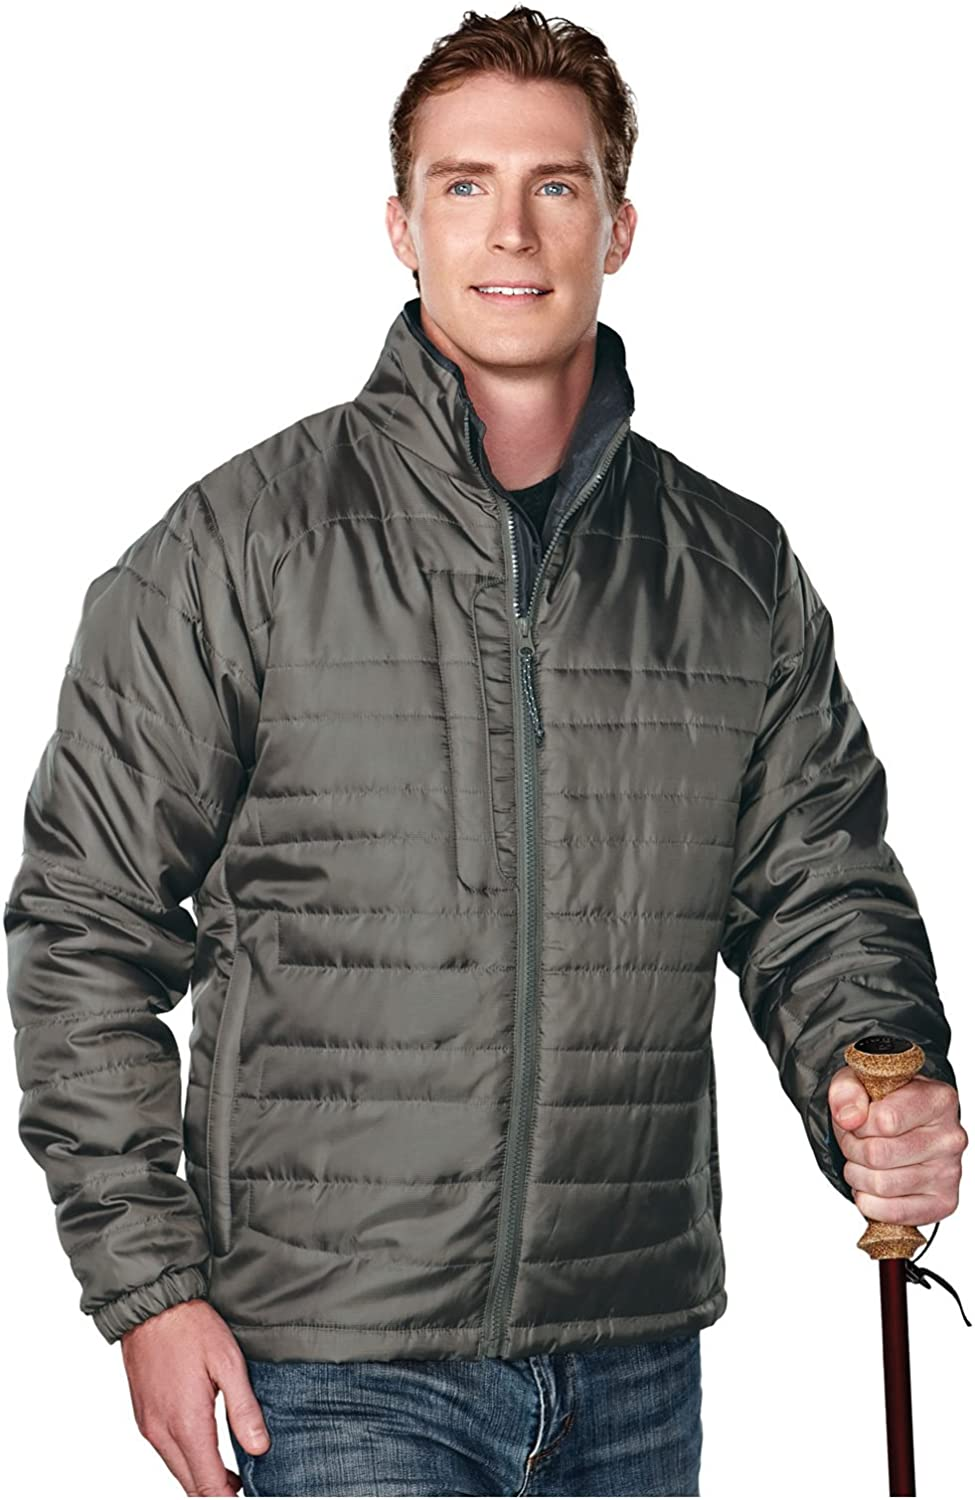 Tri-Mountain Men's 100% Polyester Rib- stop long sleeve quilt jacket with water resistent, 3XL, MOSS/CHARCOAL